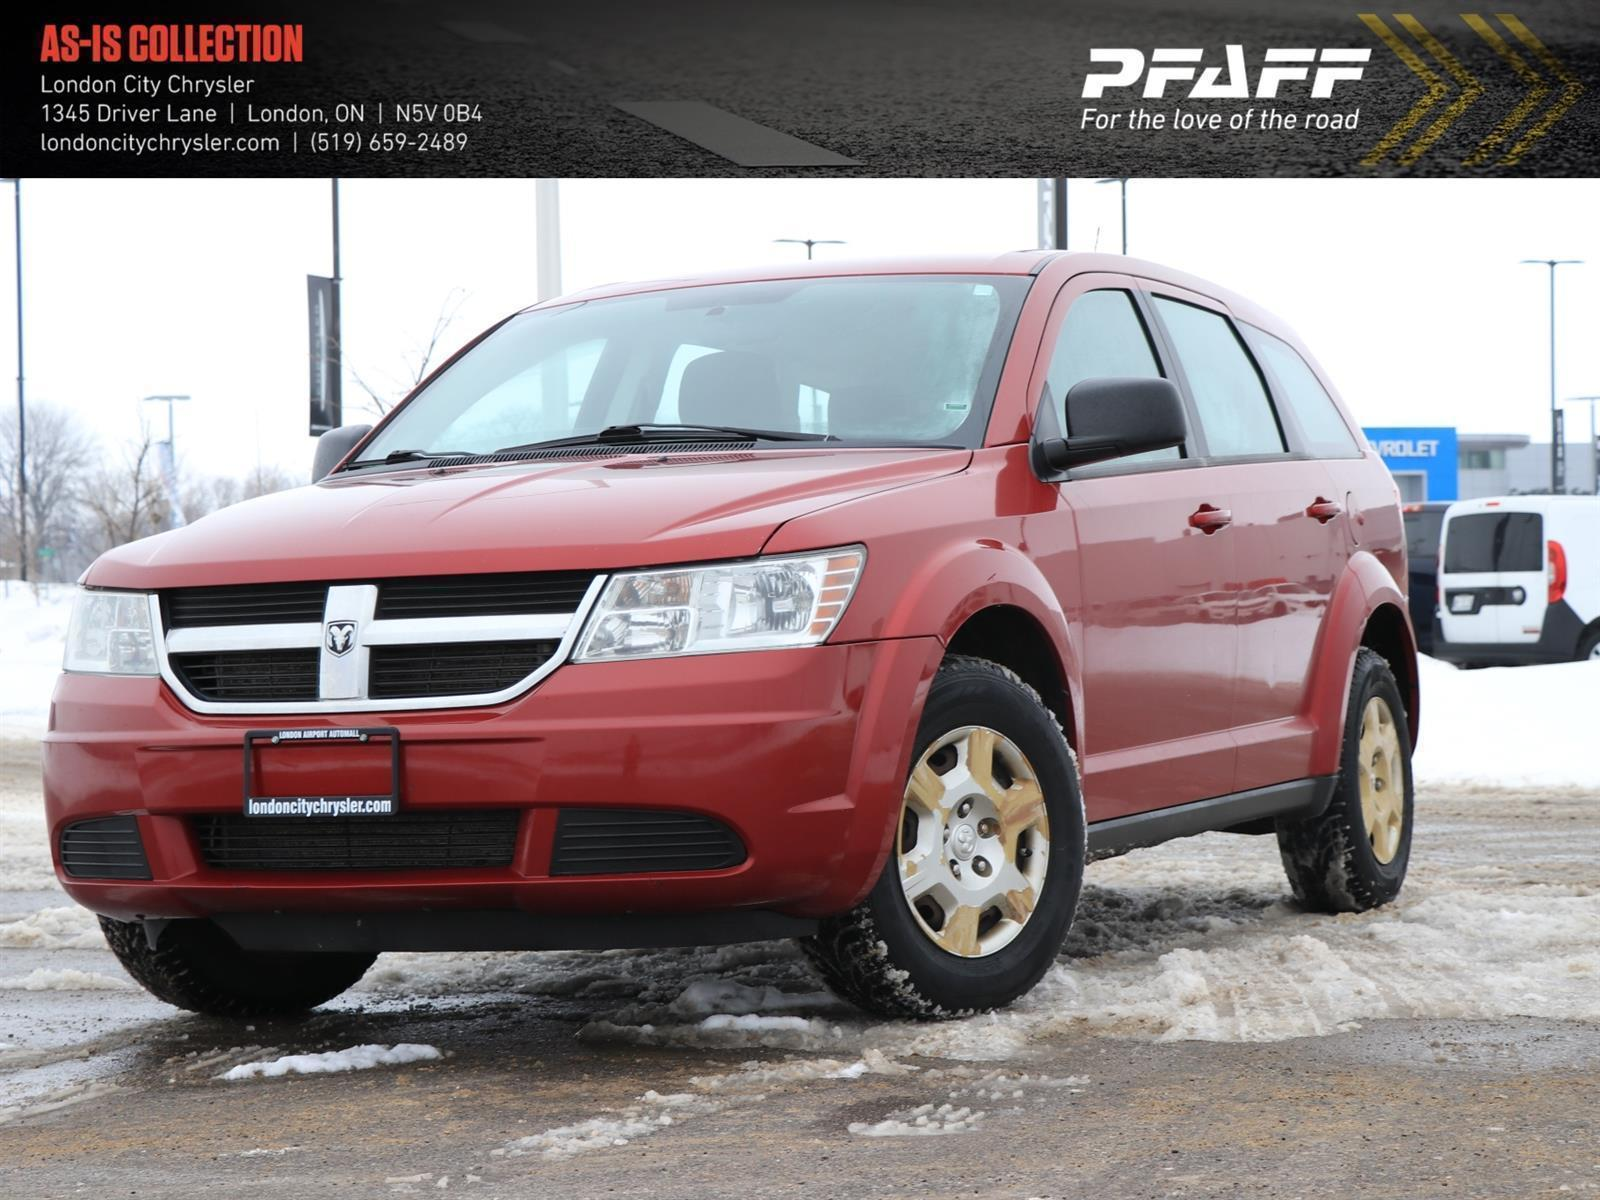 used 2010 Dodge Journey car, priced at $2,500